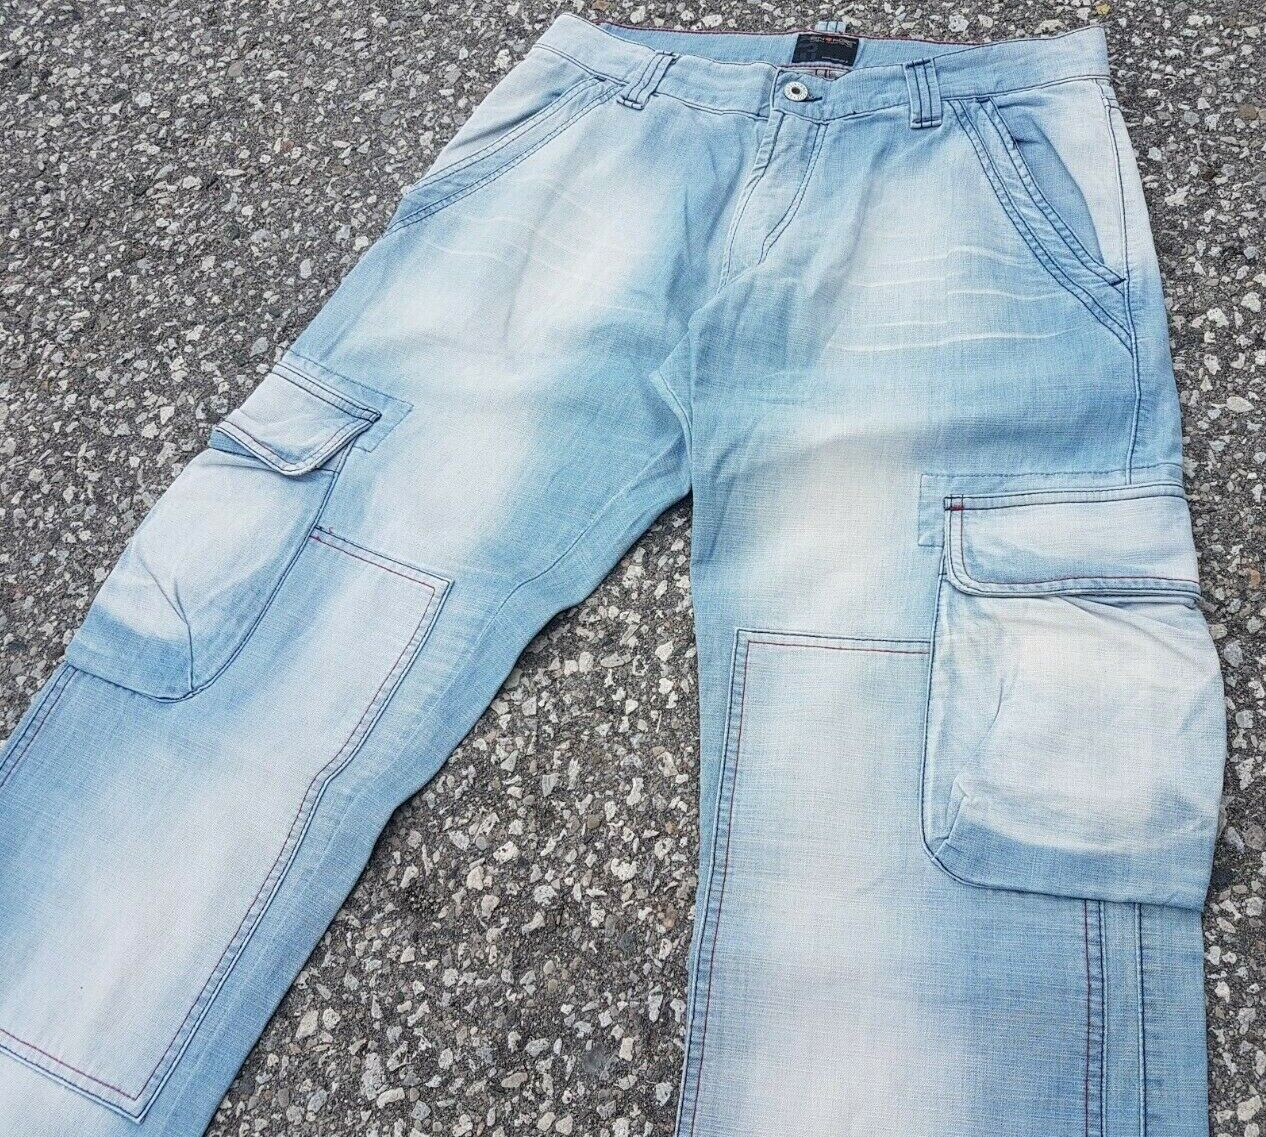 Energie Men's Jeans Light Wash Faded Cargo Jeans Straight Leg ITALY Sz 32x34